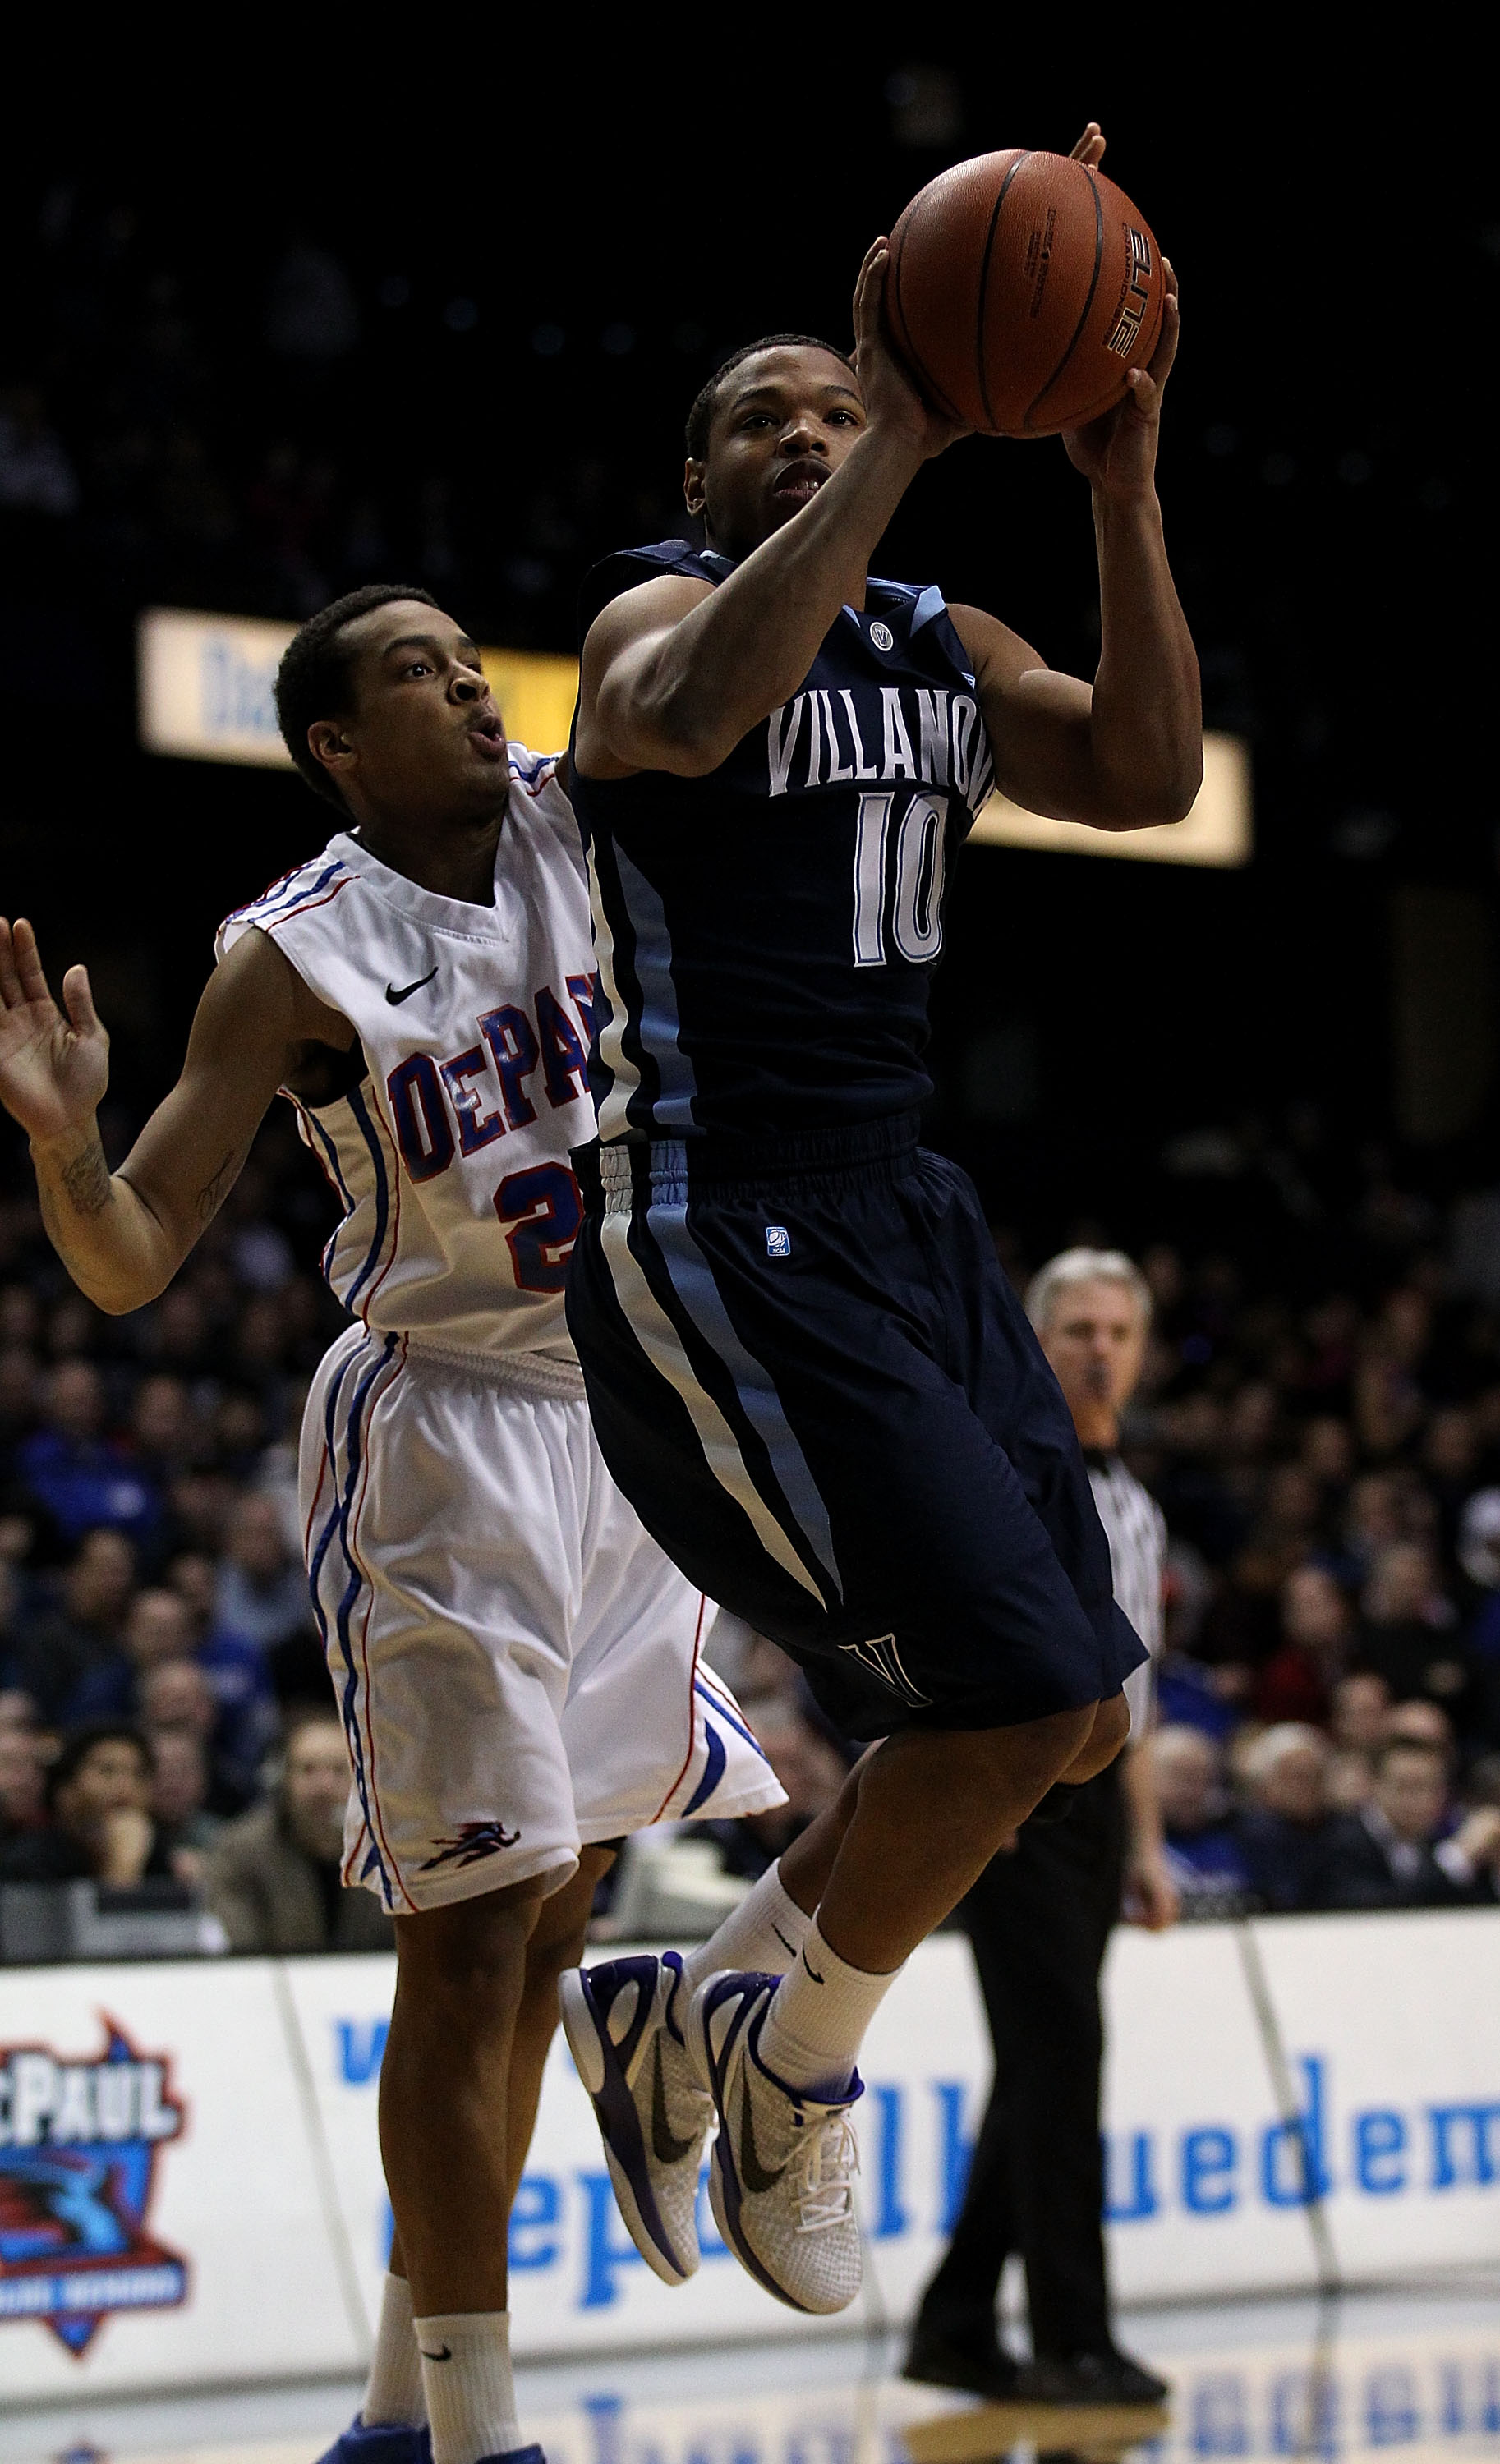 ROSEMONT, IL - FEBRUARY 19: Corey Fisher #10 of the Villanova Wildcats shoots under pressure from Brandon Young #20 of the DePaul Blue Demons at the Allstate Arena on February 19, 2011 in Rosemont, Illinois. (Photo by Jonathan Daniel/Getty Images)